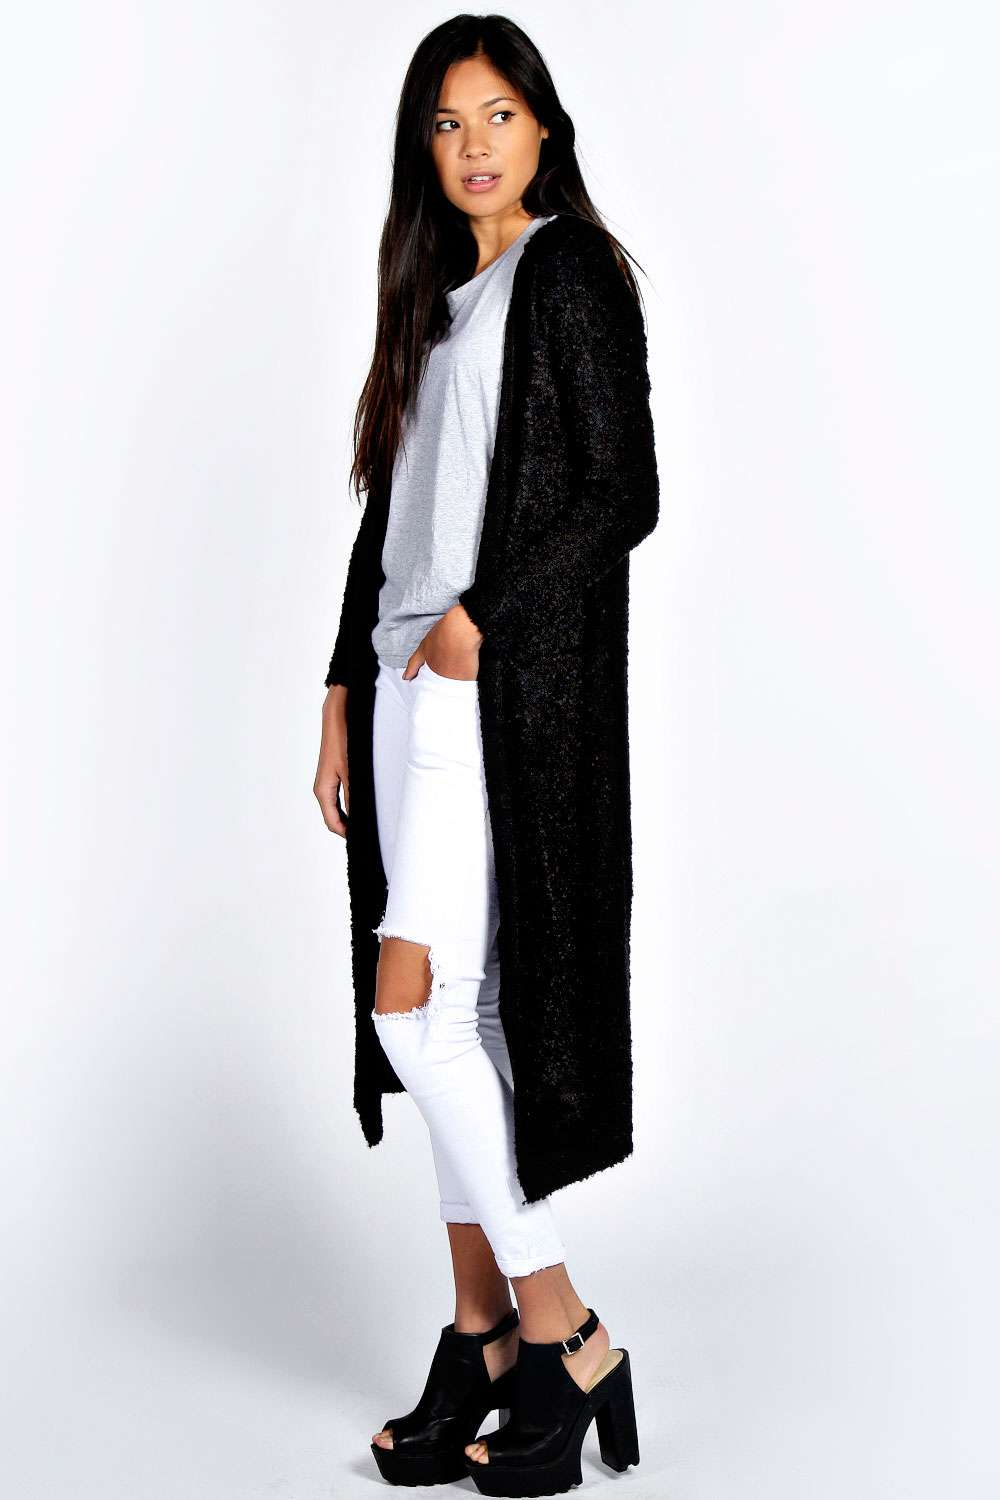 Ladies Black Long Sleeve Cardigan - Cardigan With Buttons